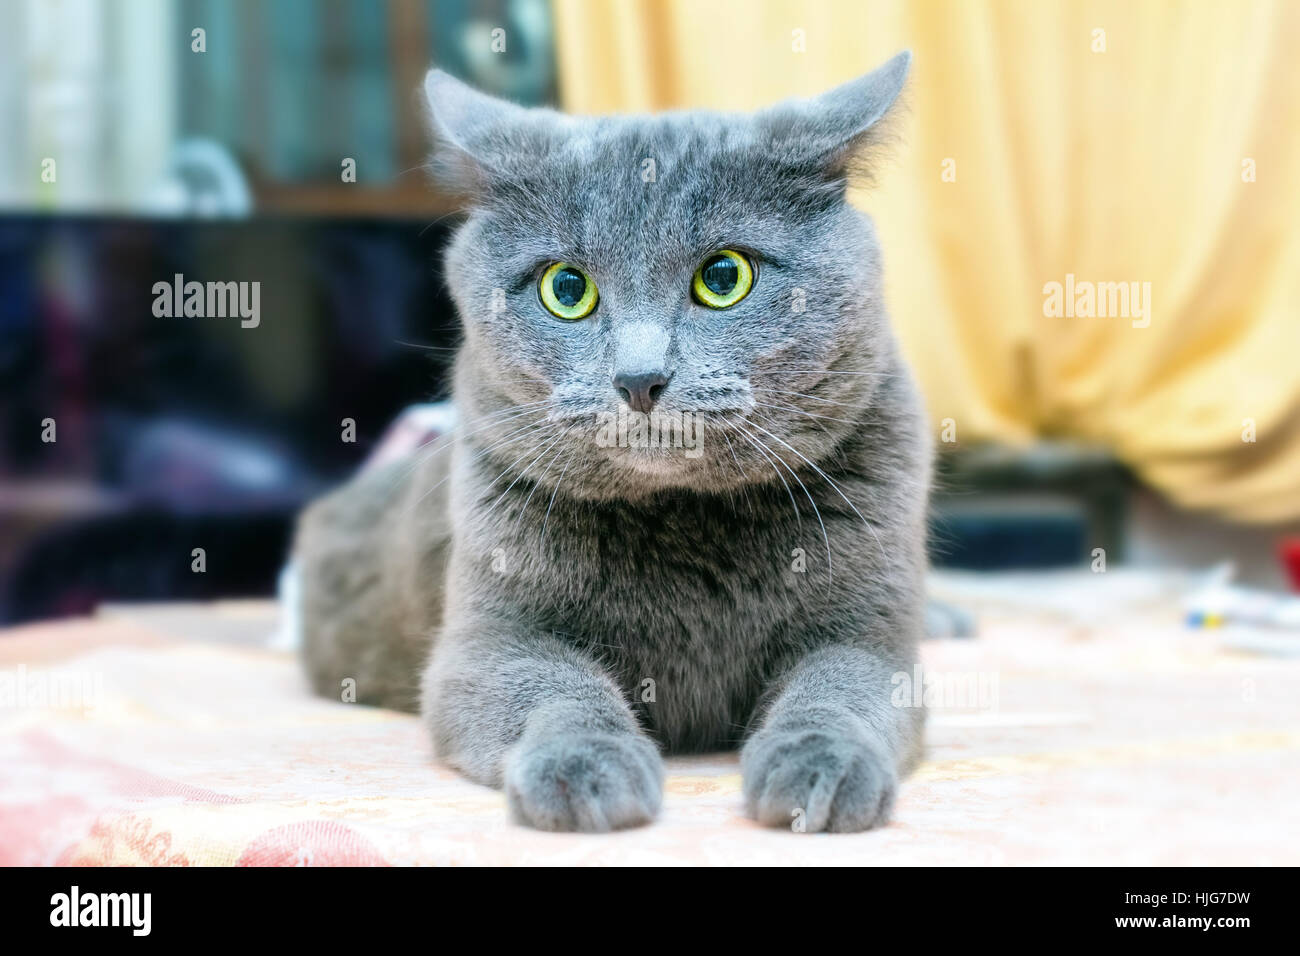 Adult grey cat puzzled at home room - Stock Image